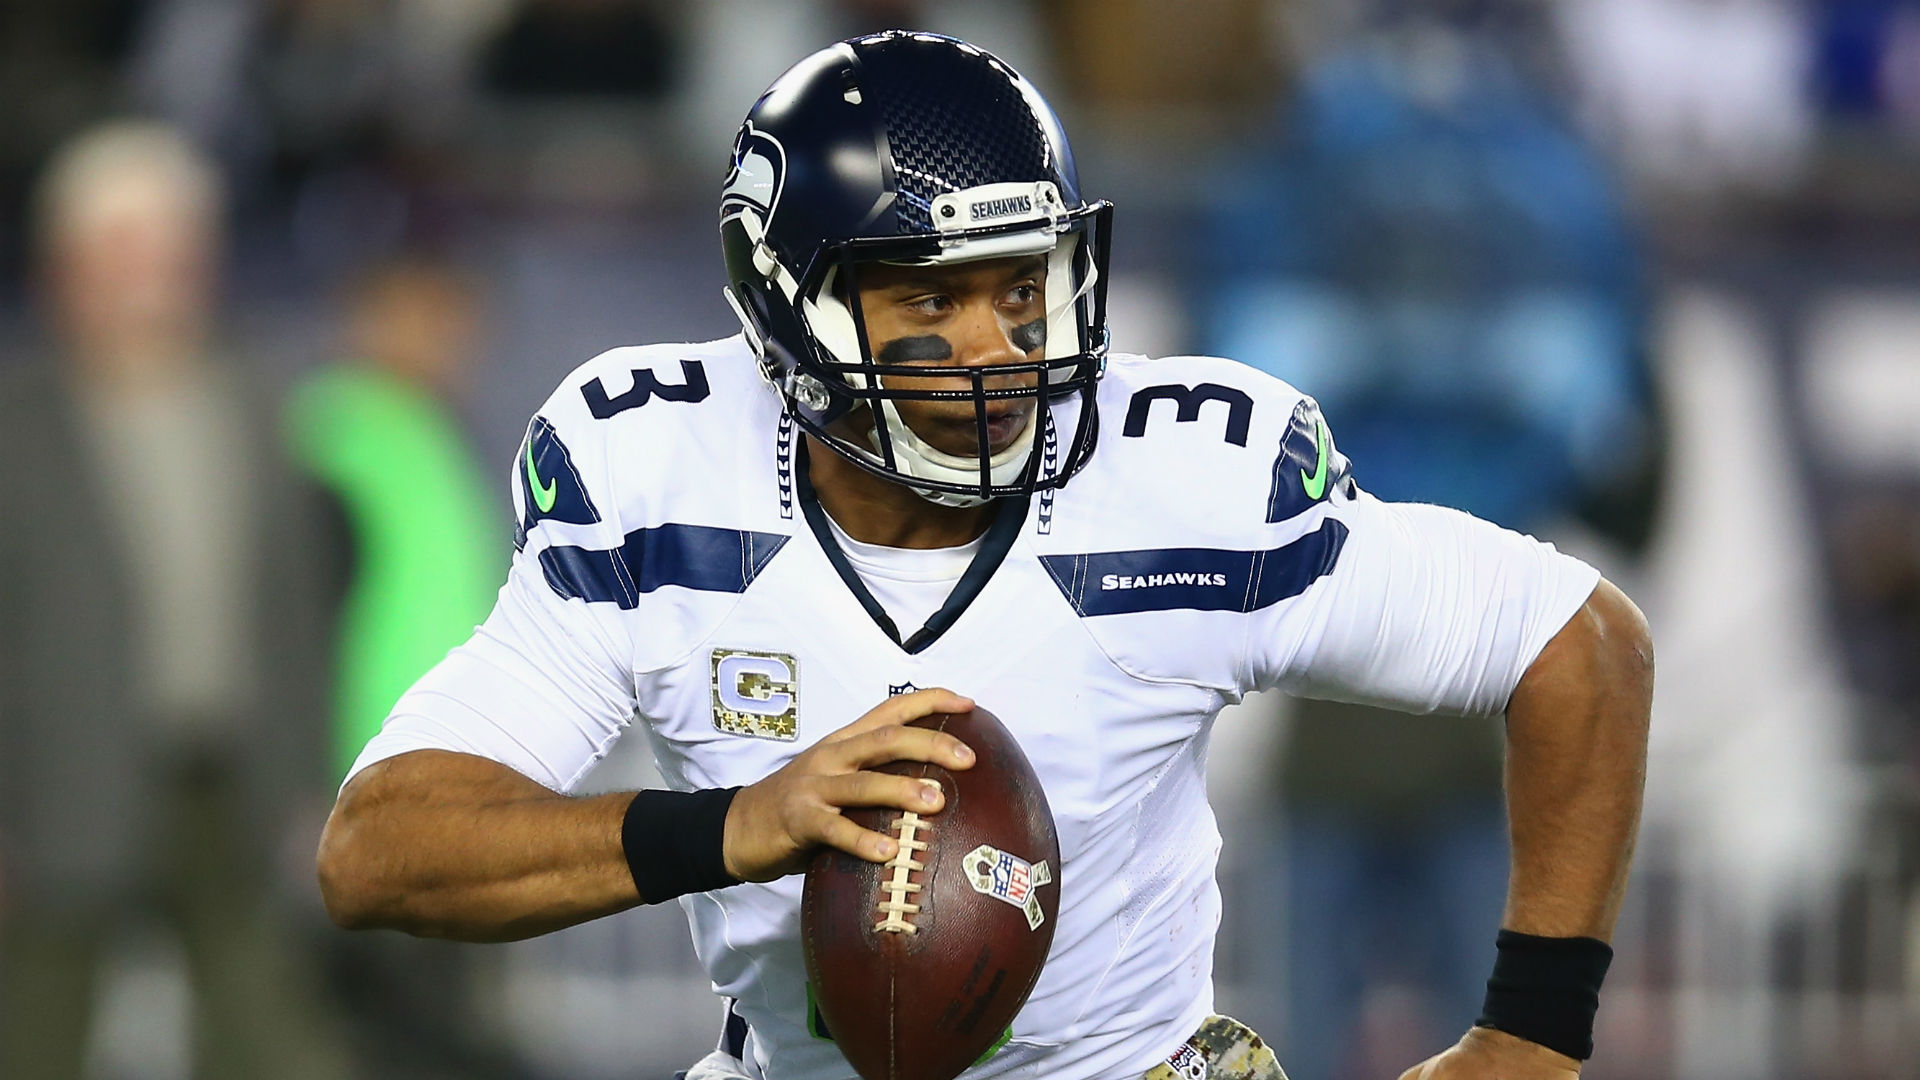 Seahawks find some balance, toughness in win over Patriots